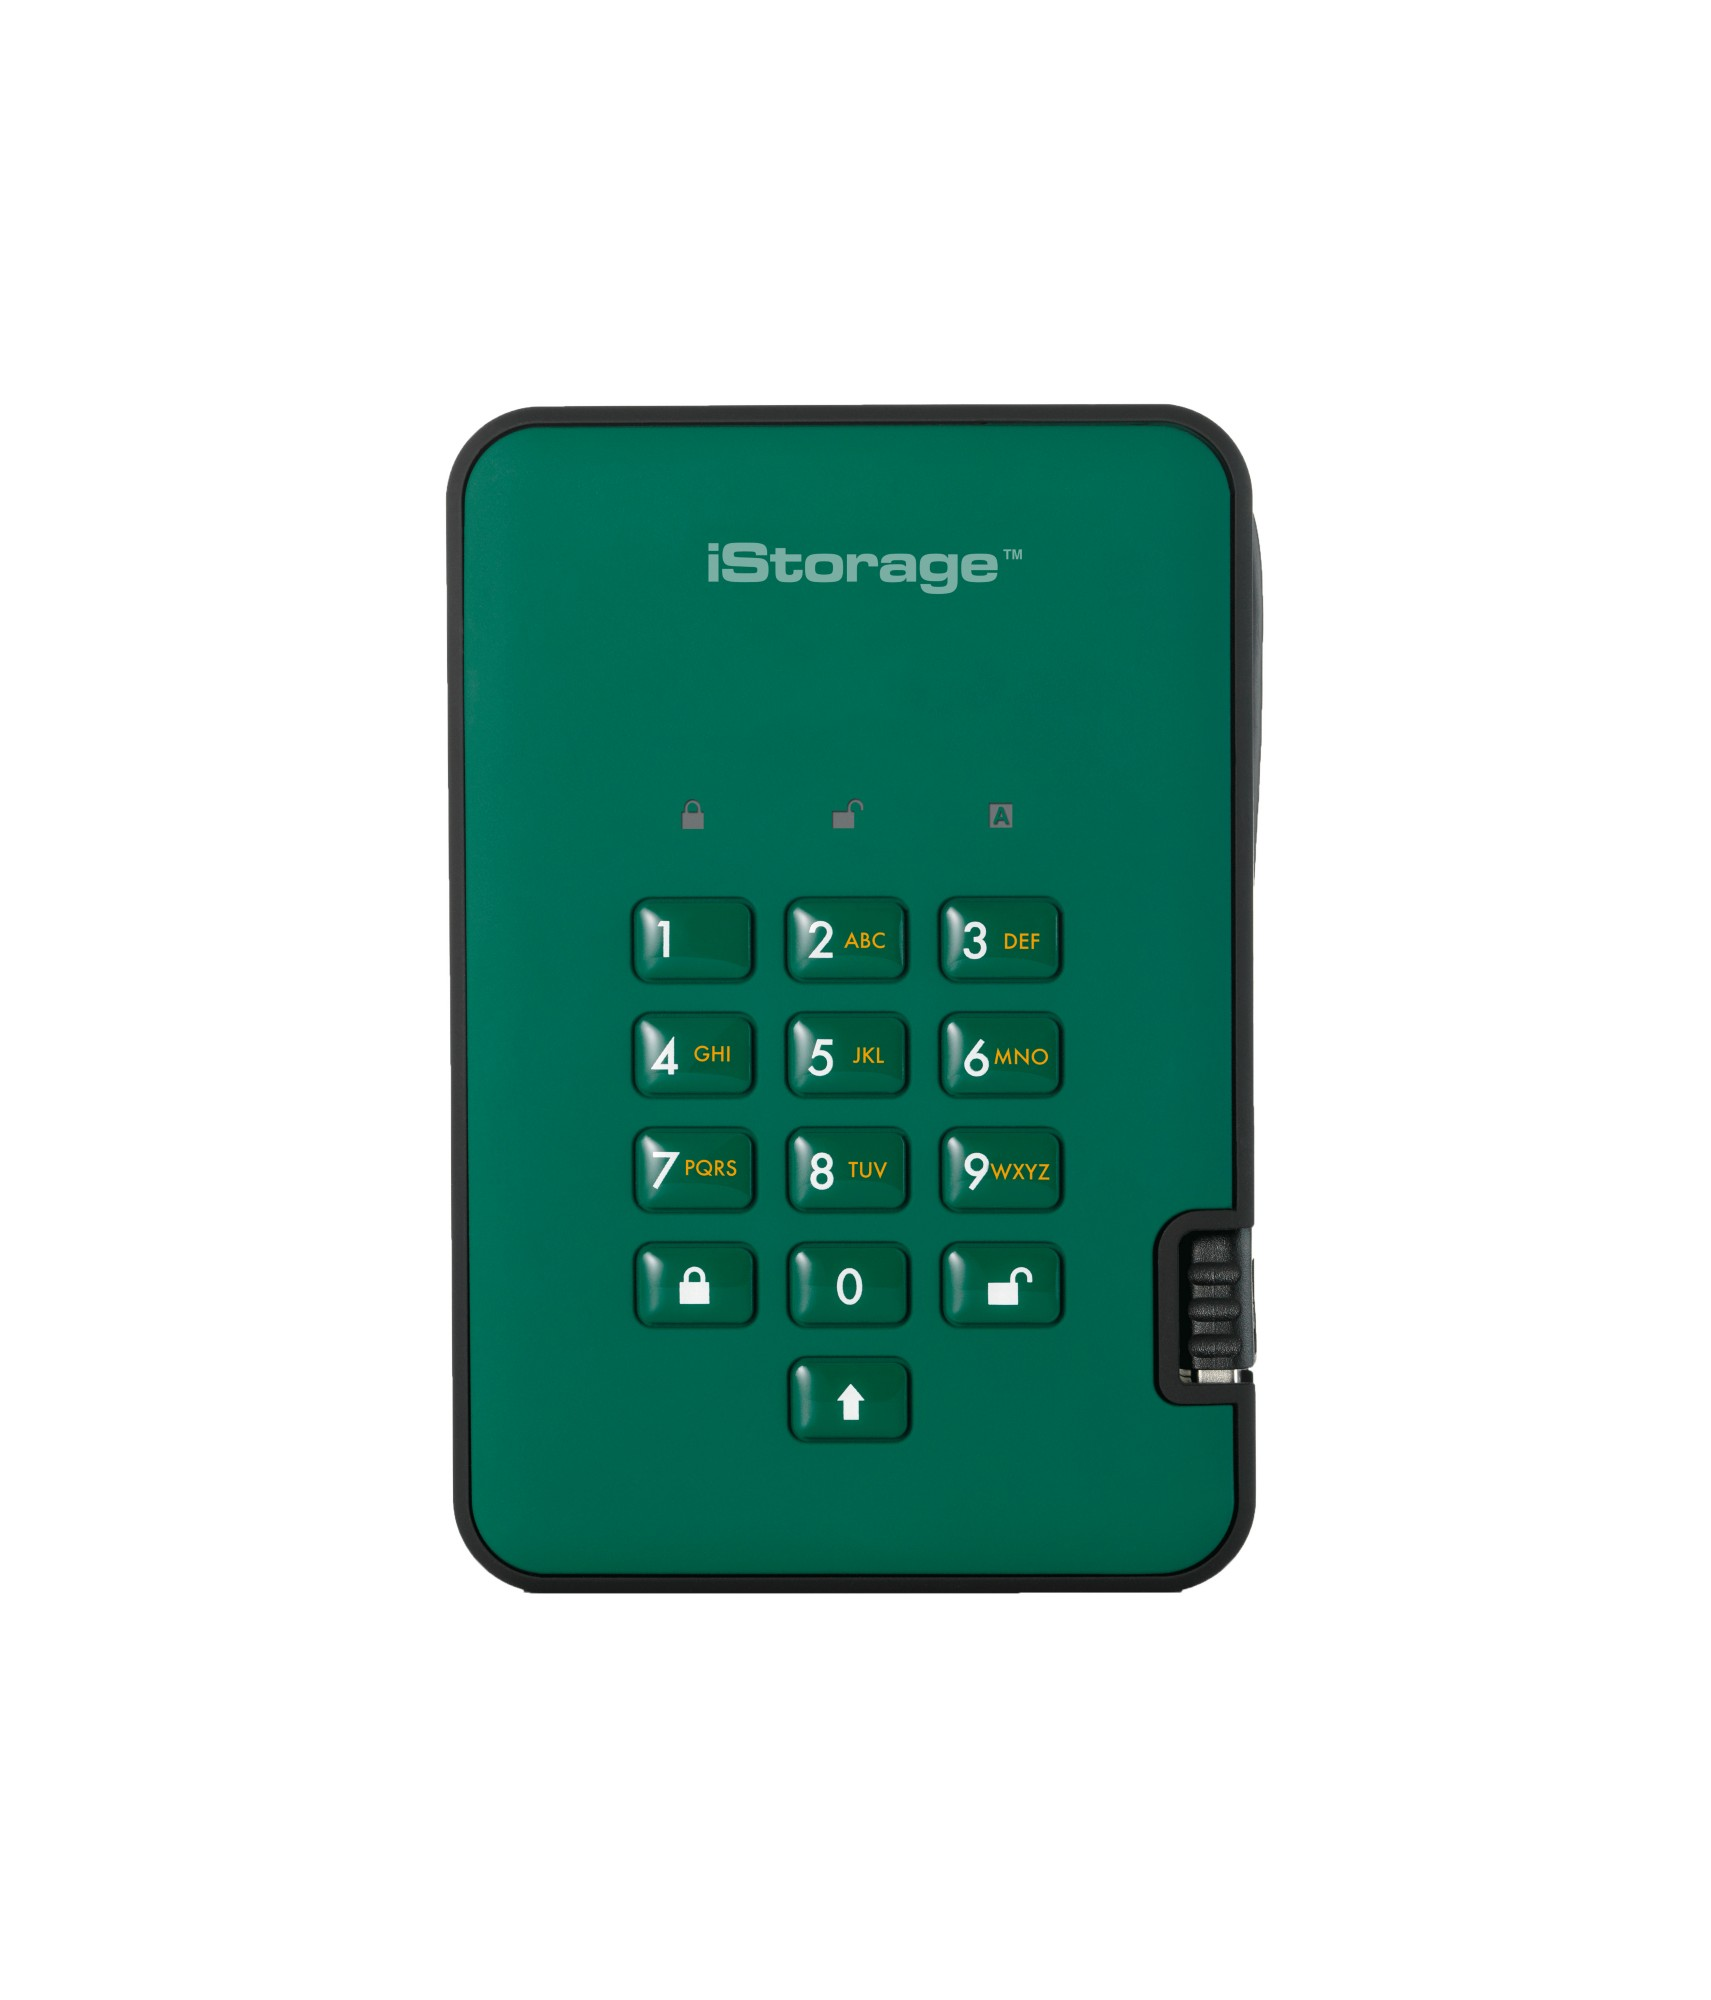 ISTORAGE IS-DA2-256-500-GN DISKASHUR 2 EXTERNAL HARD DRIVE 500 GB GREEN